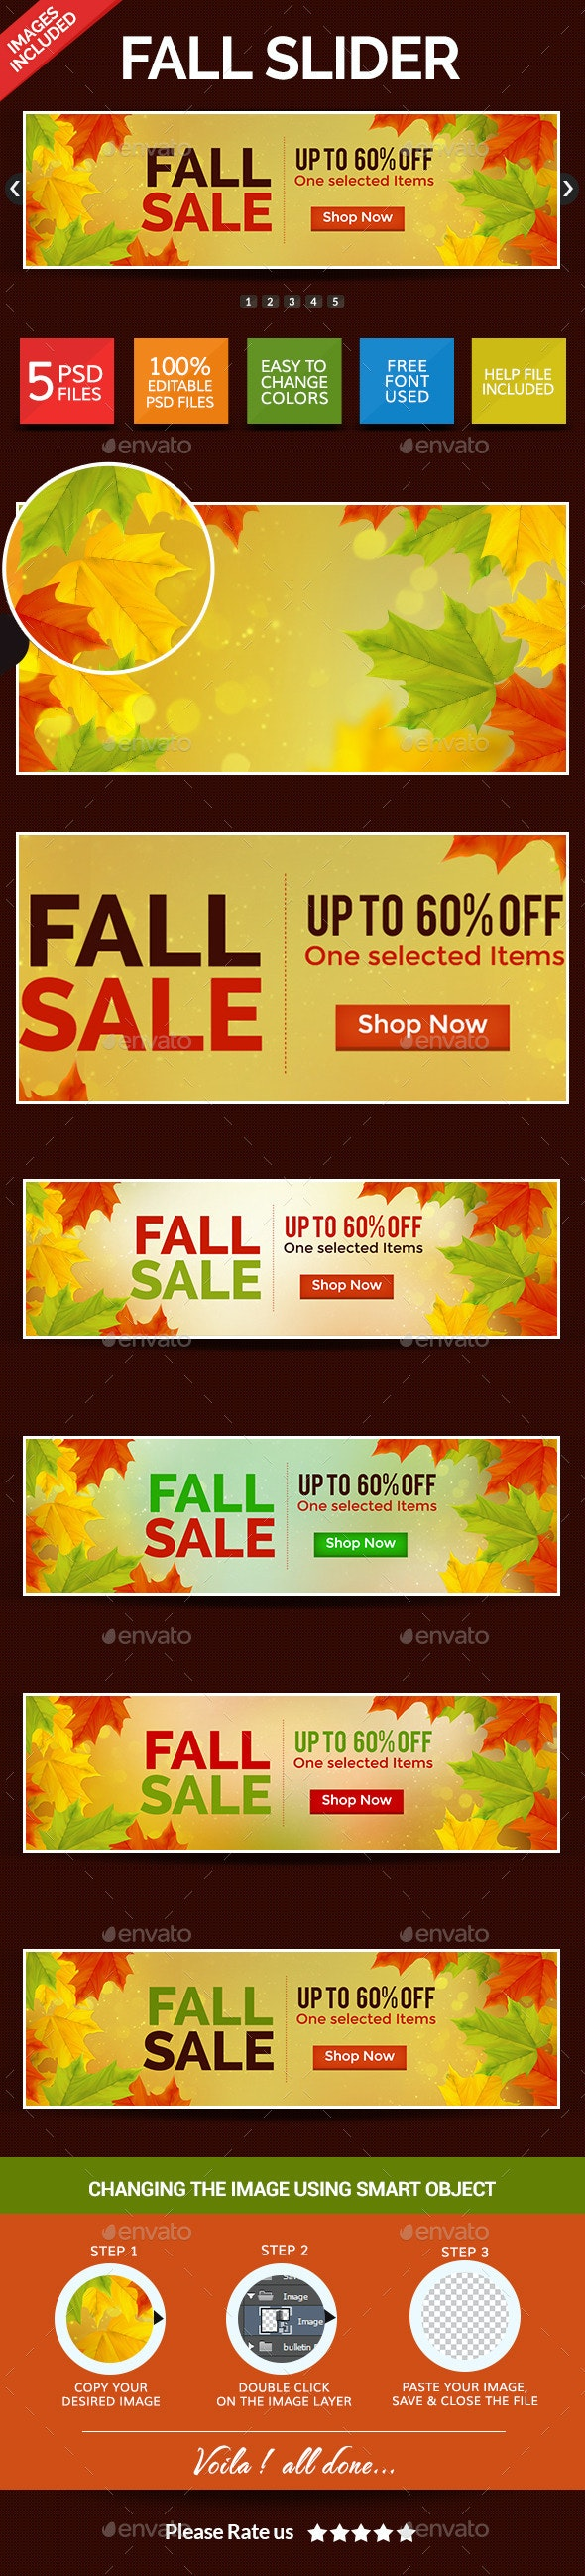 Fall Sale Slider - Sliders & Features Web Elements